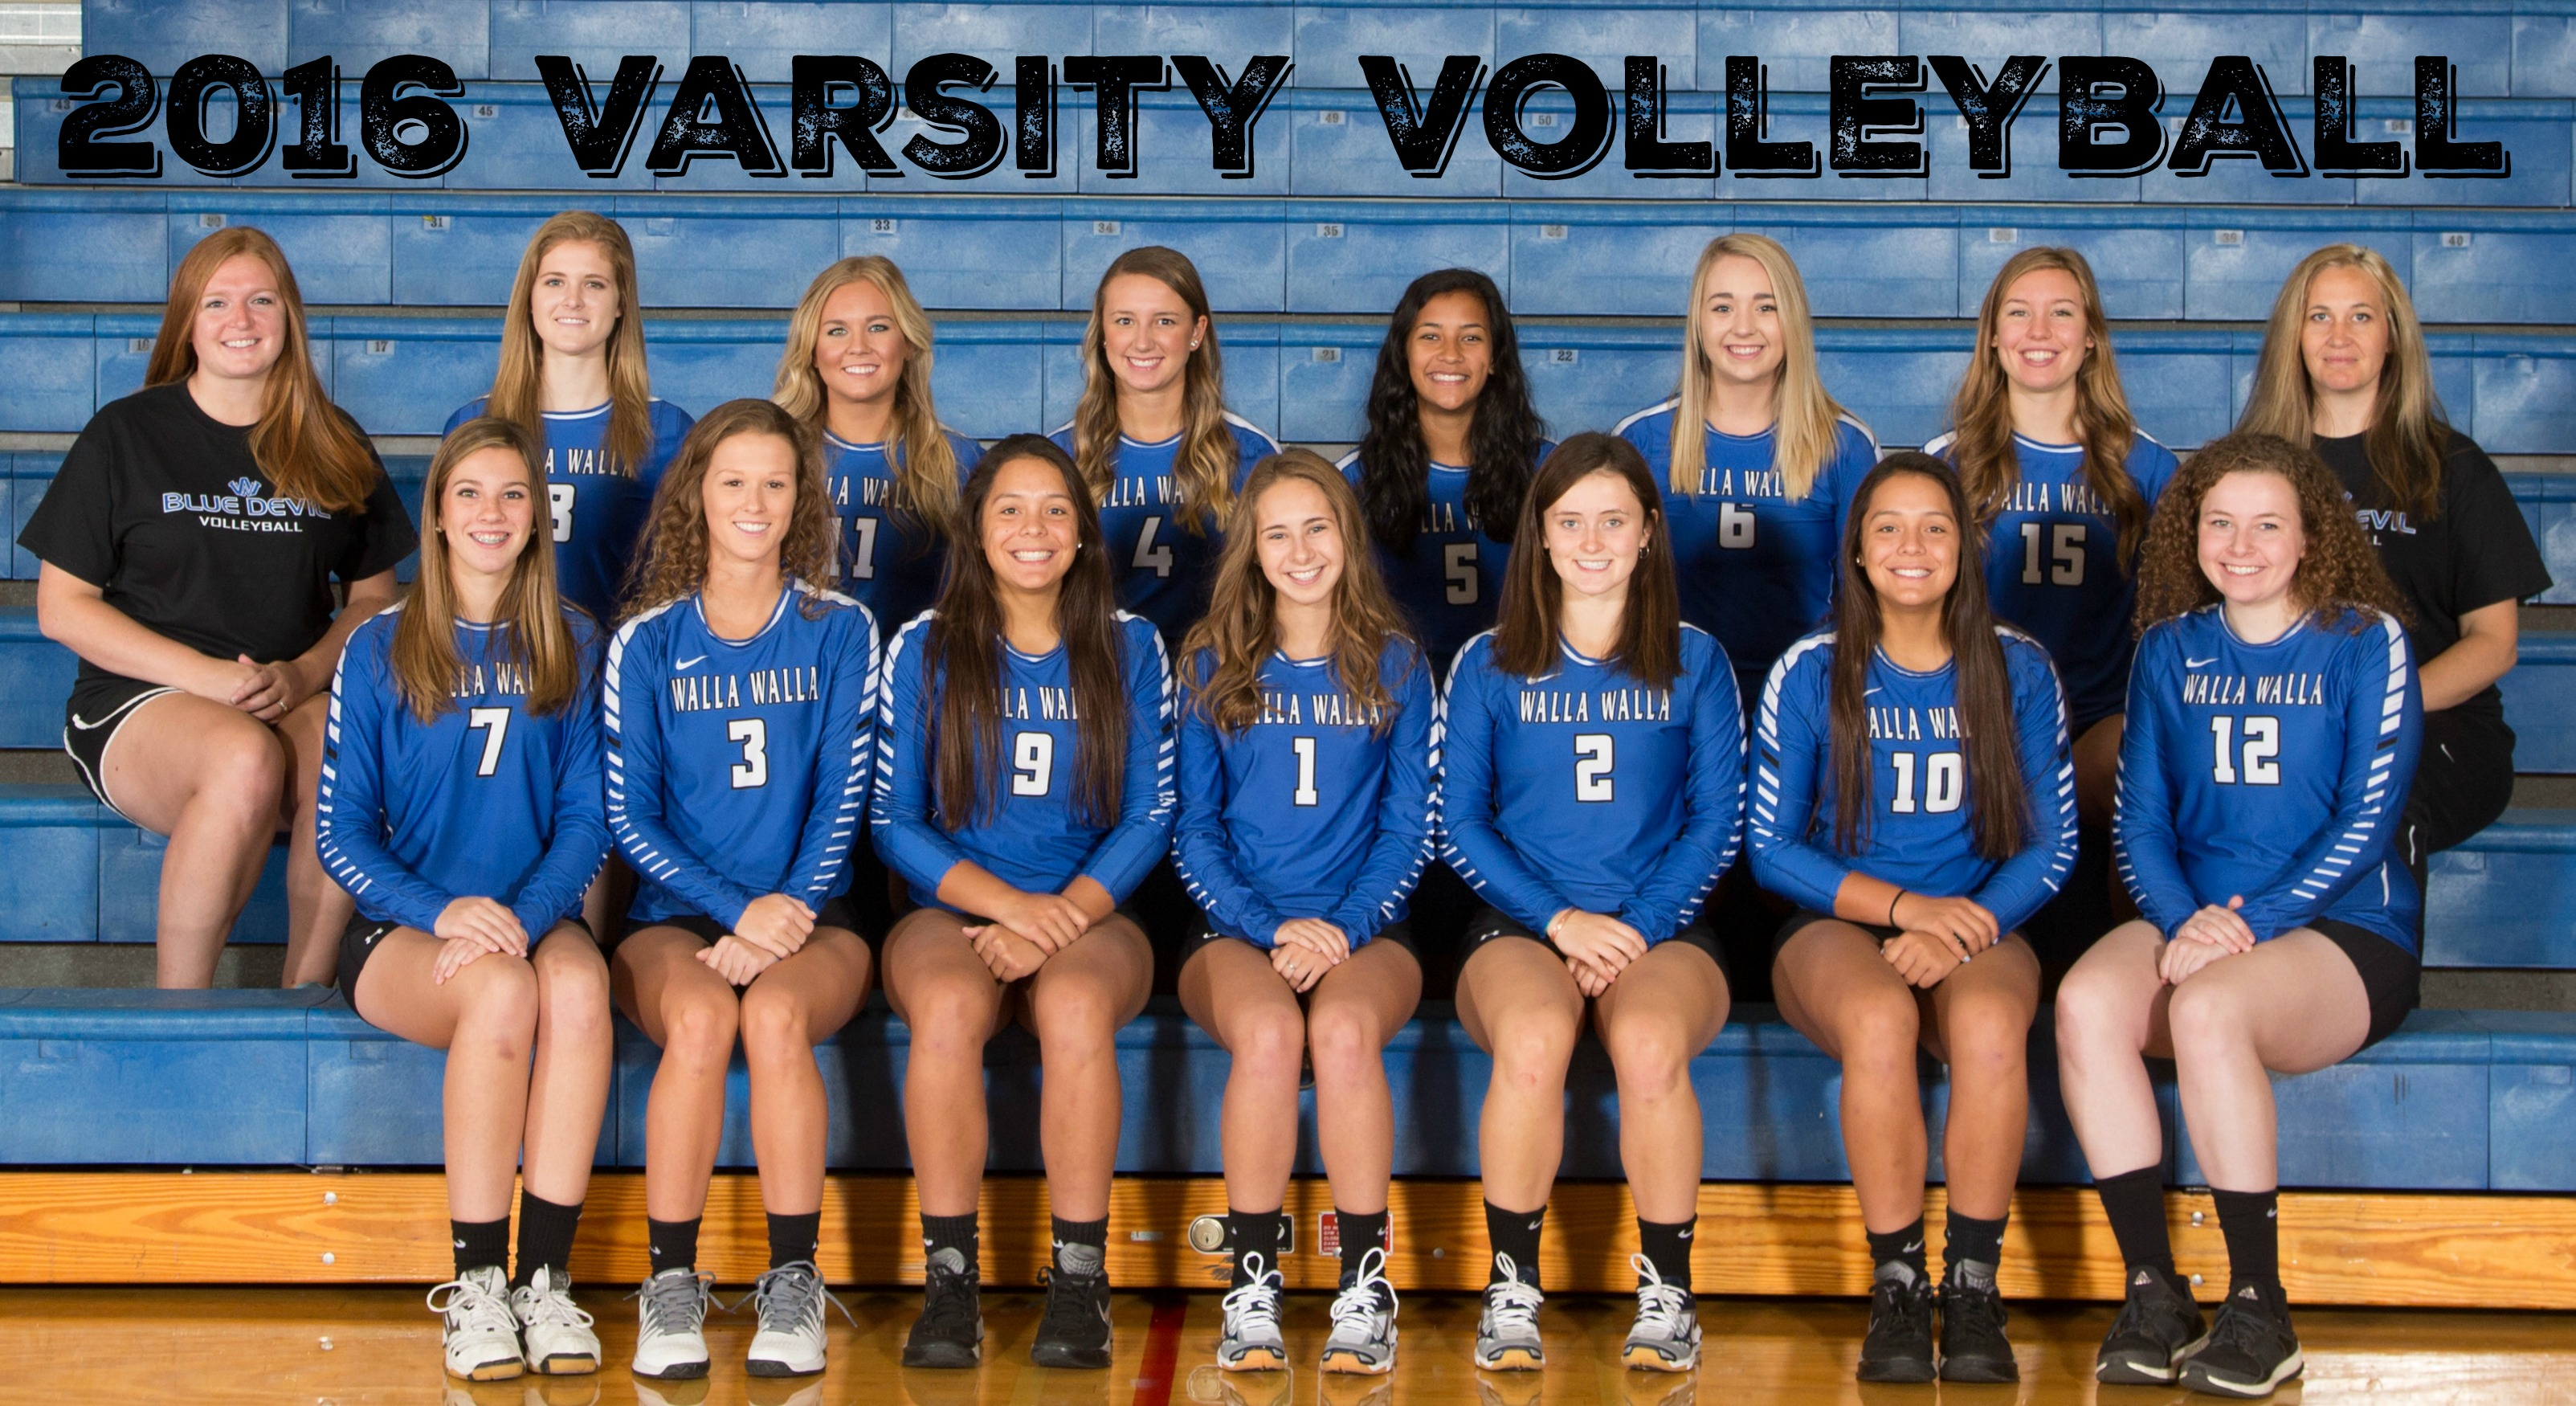 images/athletics/Volleyball/2016_Varsity_Volleyball.jpg